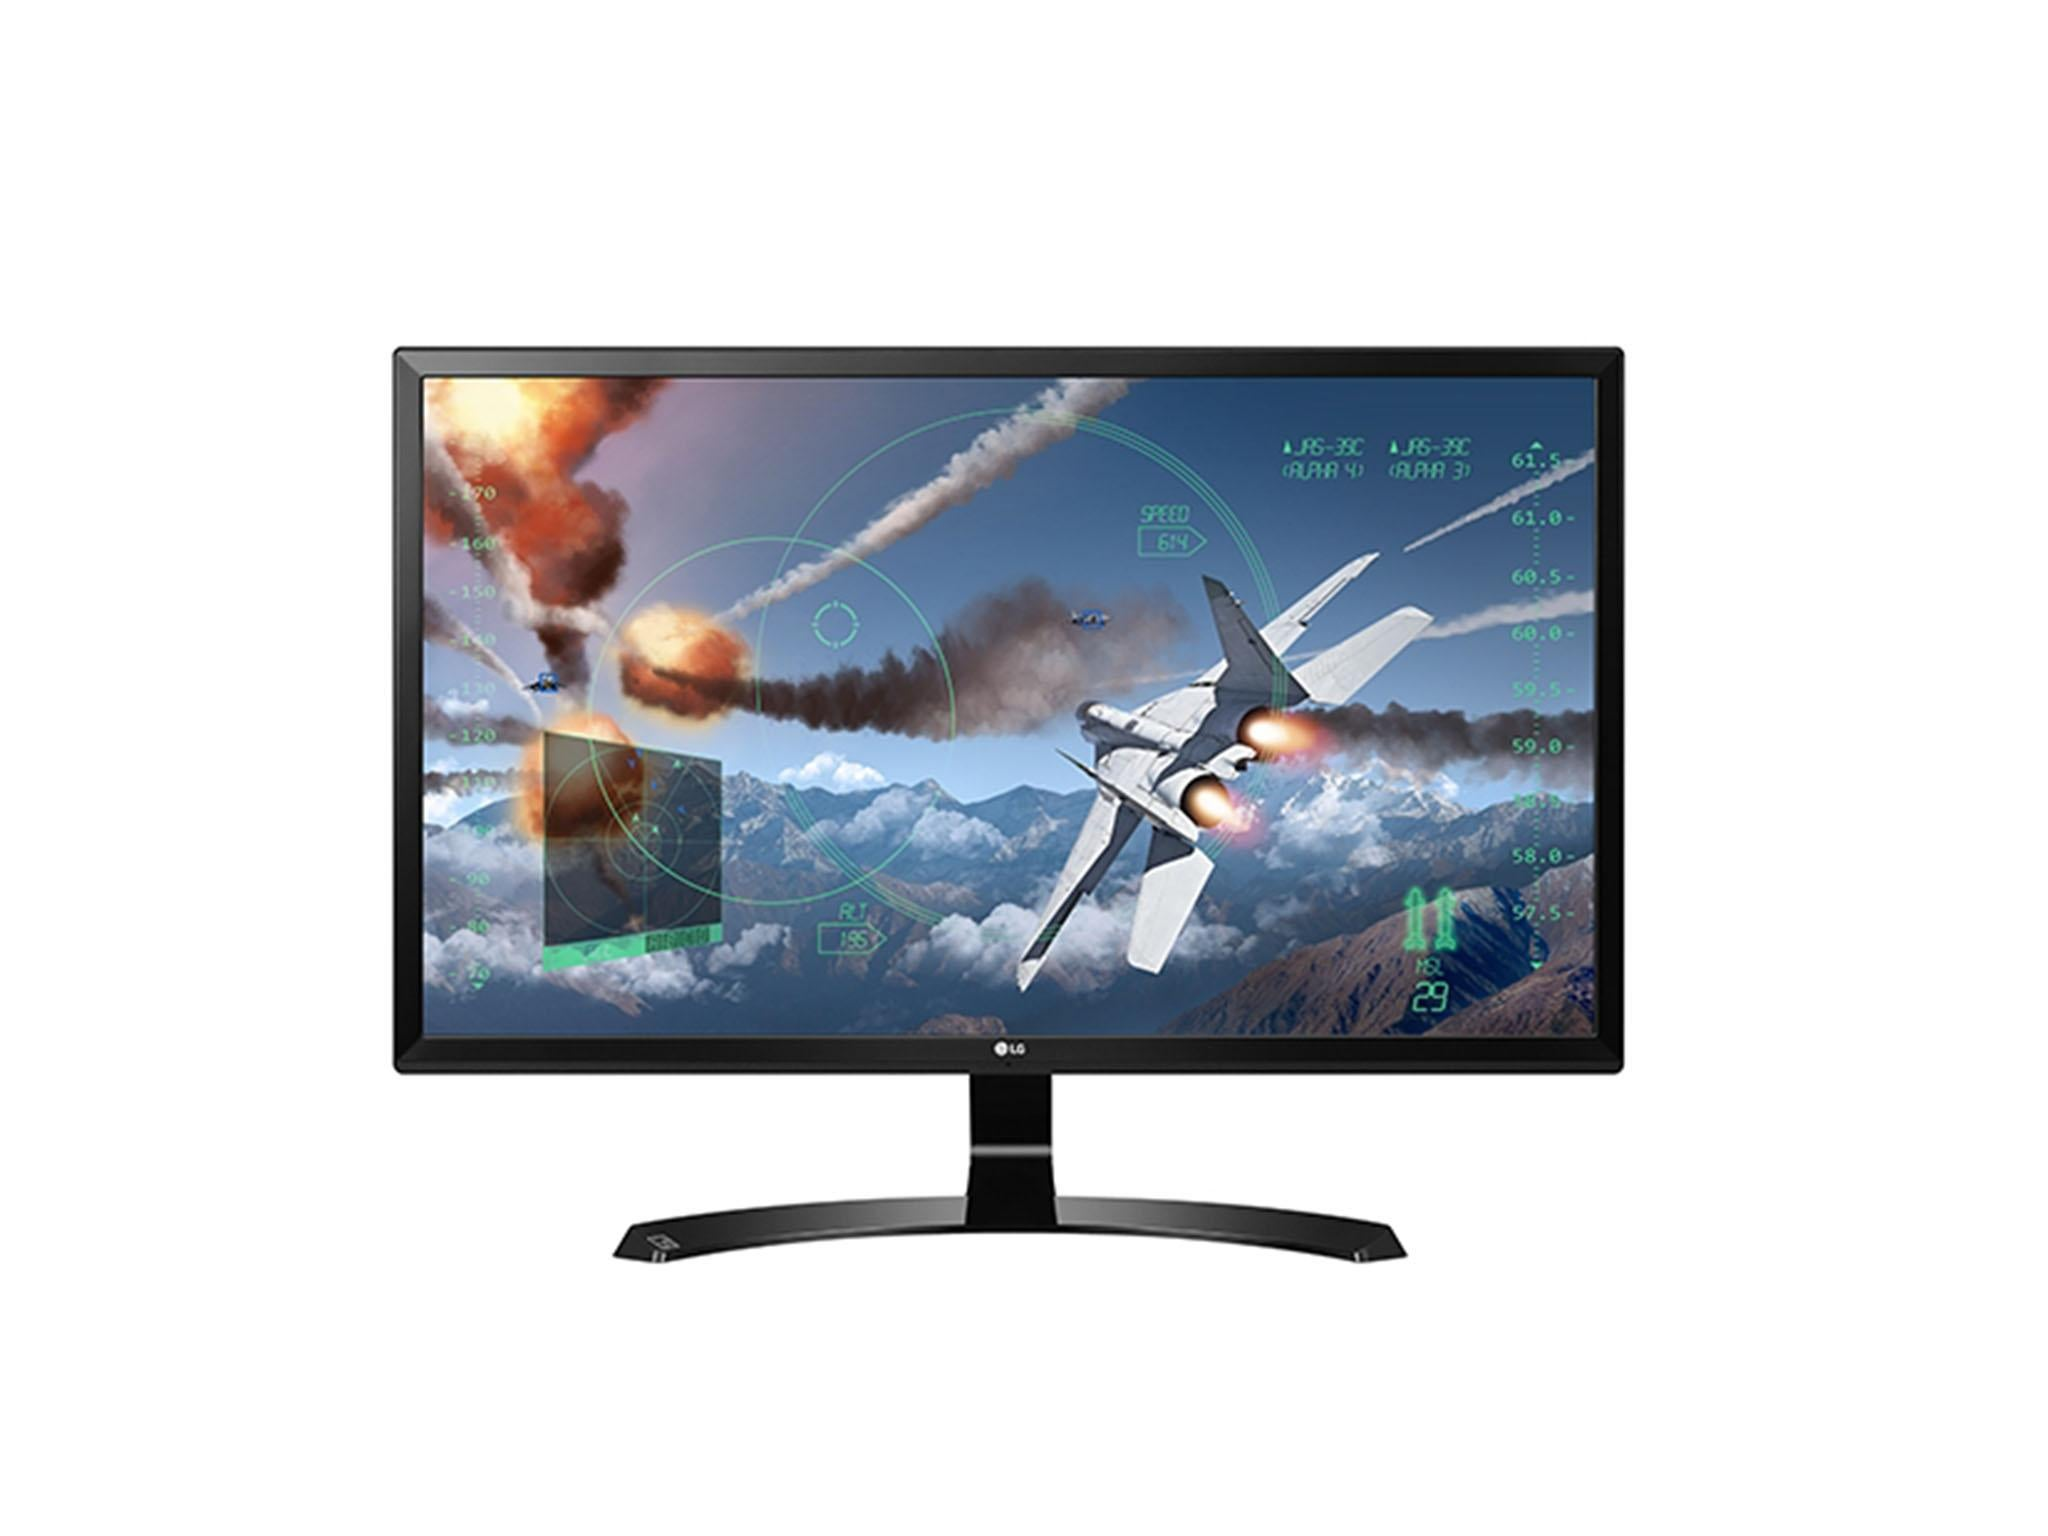 e2222b2c991e 10 best computer monitors | The Independent